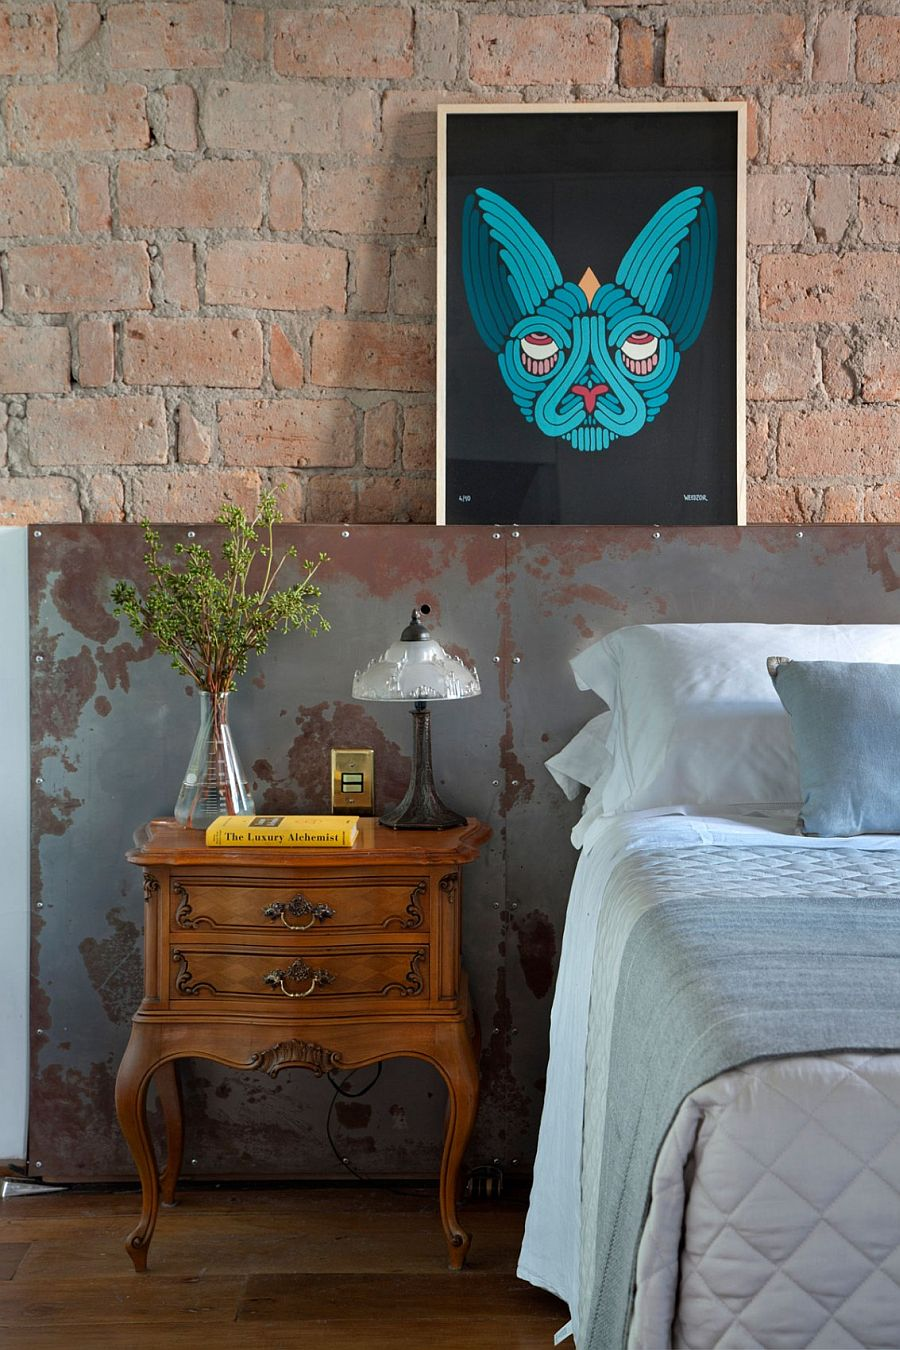 Distressed finishes and antique decor make a splash in the modern industrial bedroom